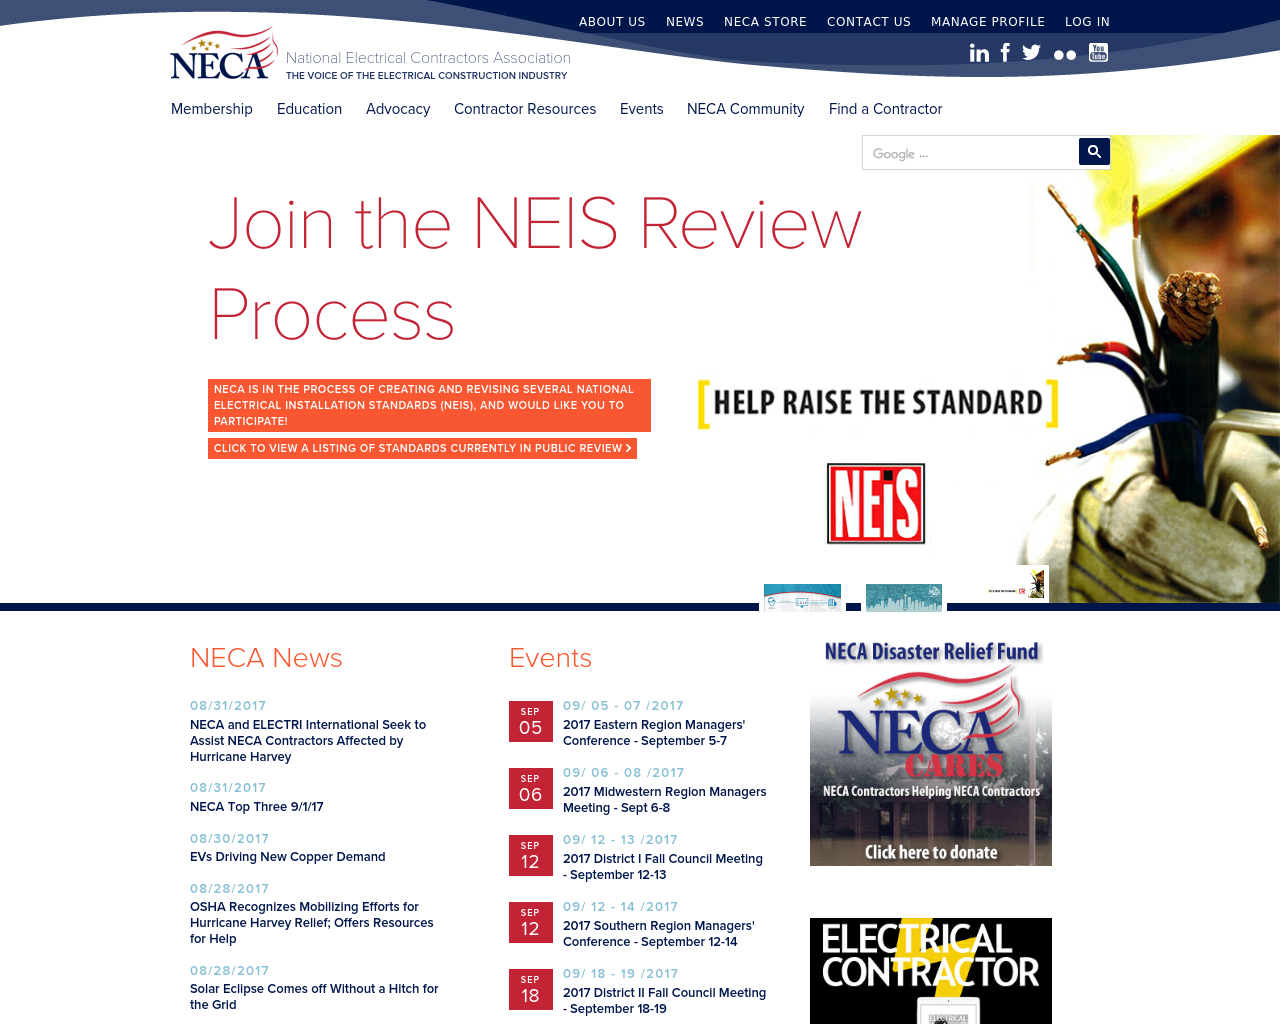 National-Electrical-Contractors-Association-Advertising-Reviews-Pricing